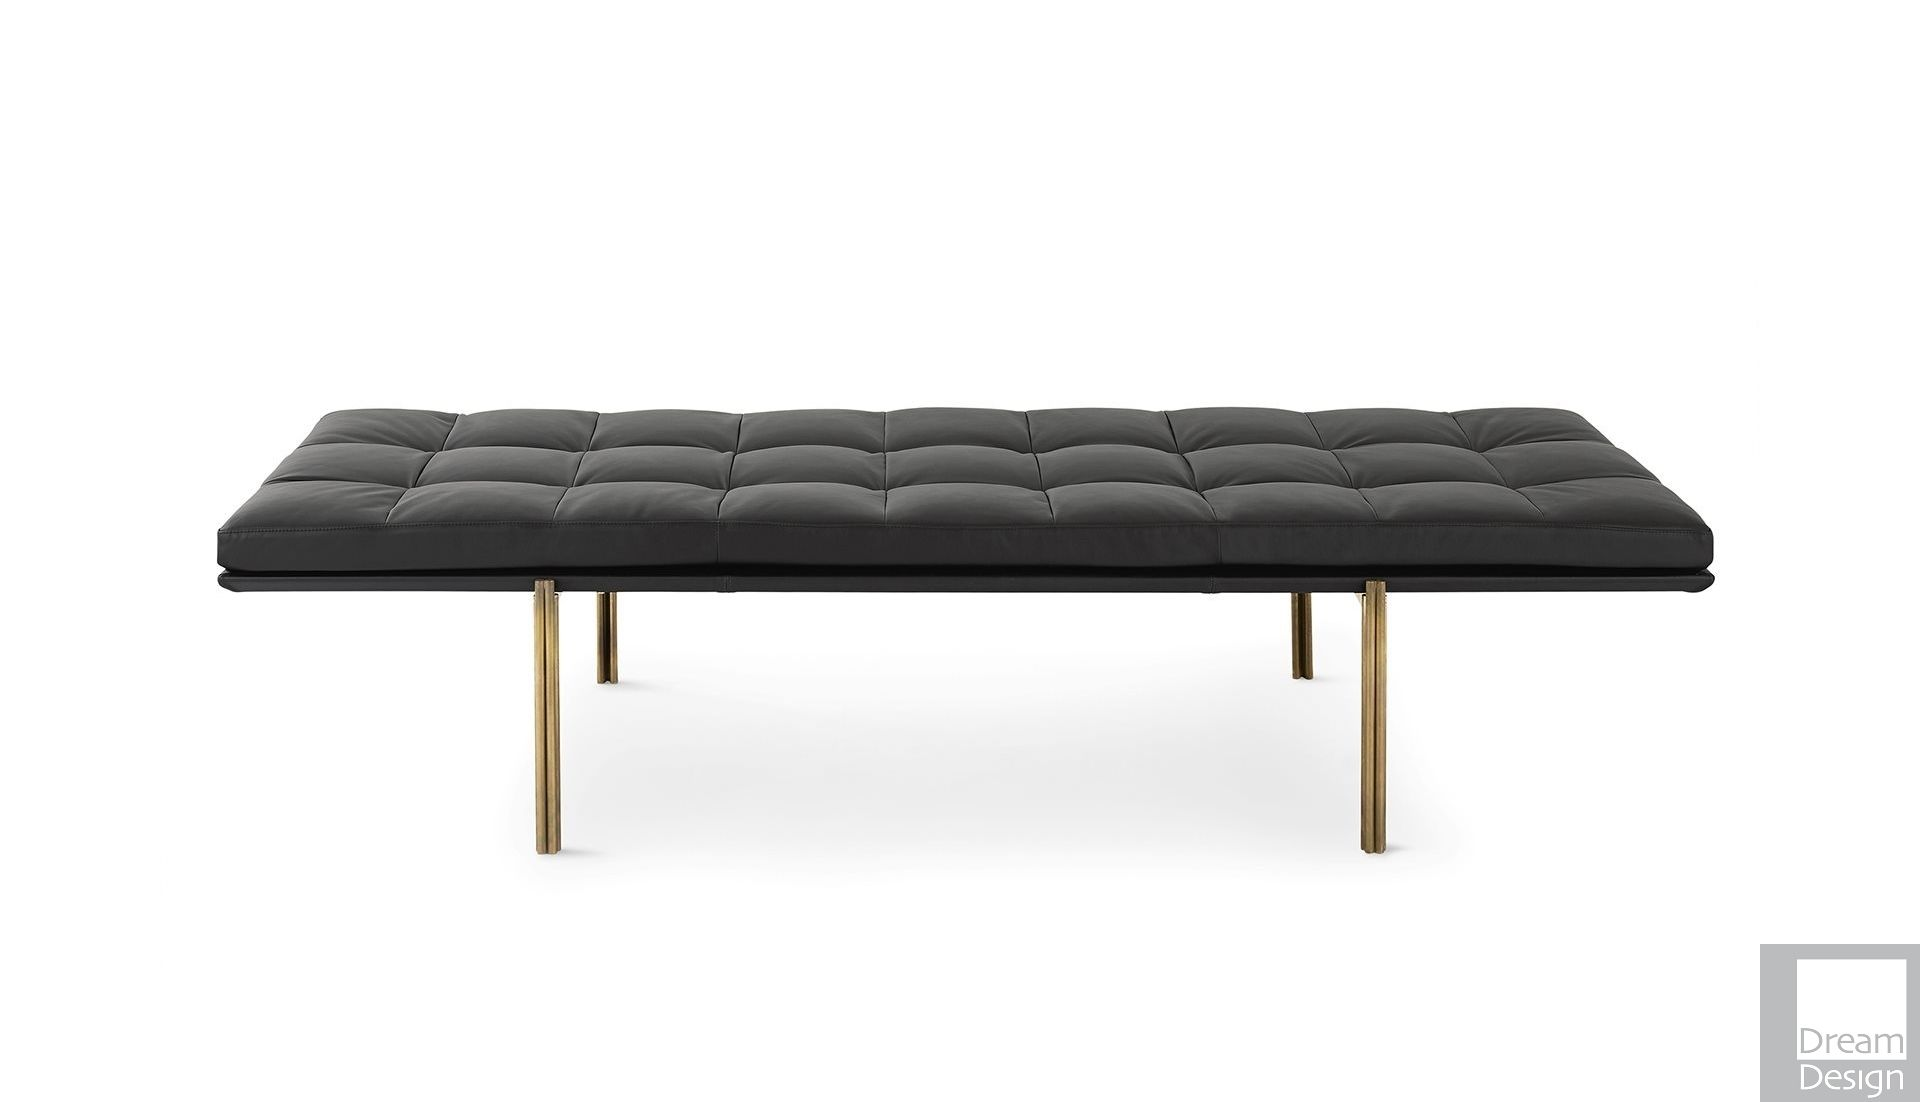 chaise longue day bed with Gallotti Radice Twelve Daybed on 220606081726286317 in addition En Forme De Nid D Oiseau De Jardin En Rotin Lit Suspendu 500004327061 in addition Wiki 2 18 392 1335 1345 1346 View French Art Deco 1 Profile Gray Eileen 1 moreover Charles Brown Fabric Chaise Longue Victorian Vintage Style also Chaise Lounge French Provinical Antique Silver With Black Leather And Crystal Buttons.